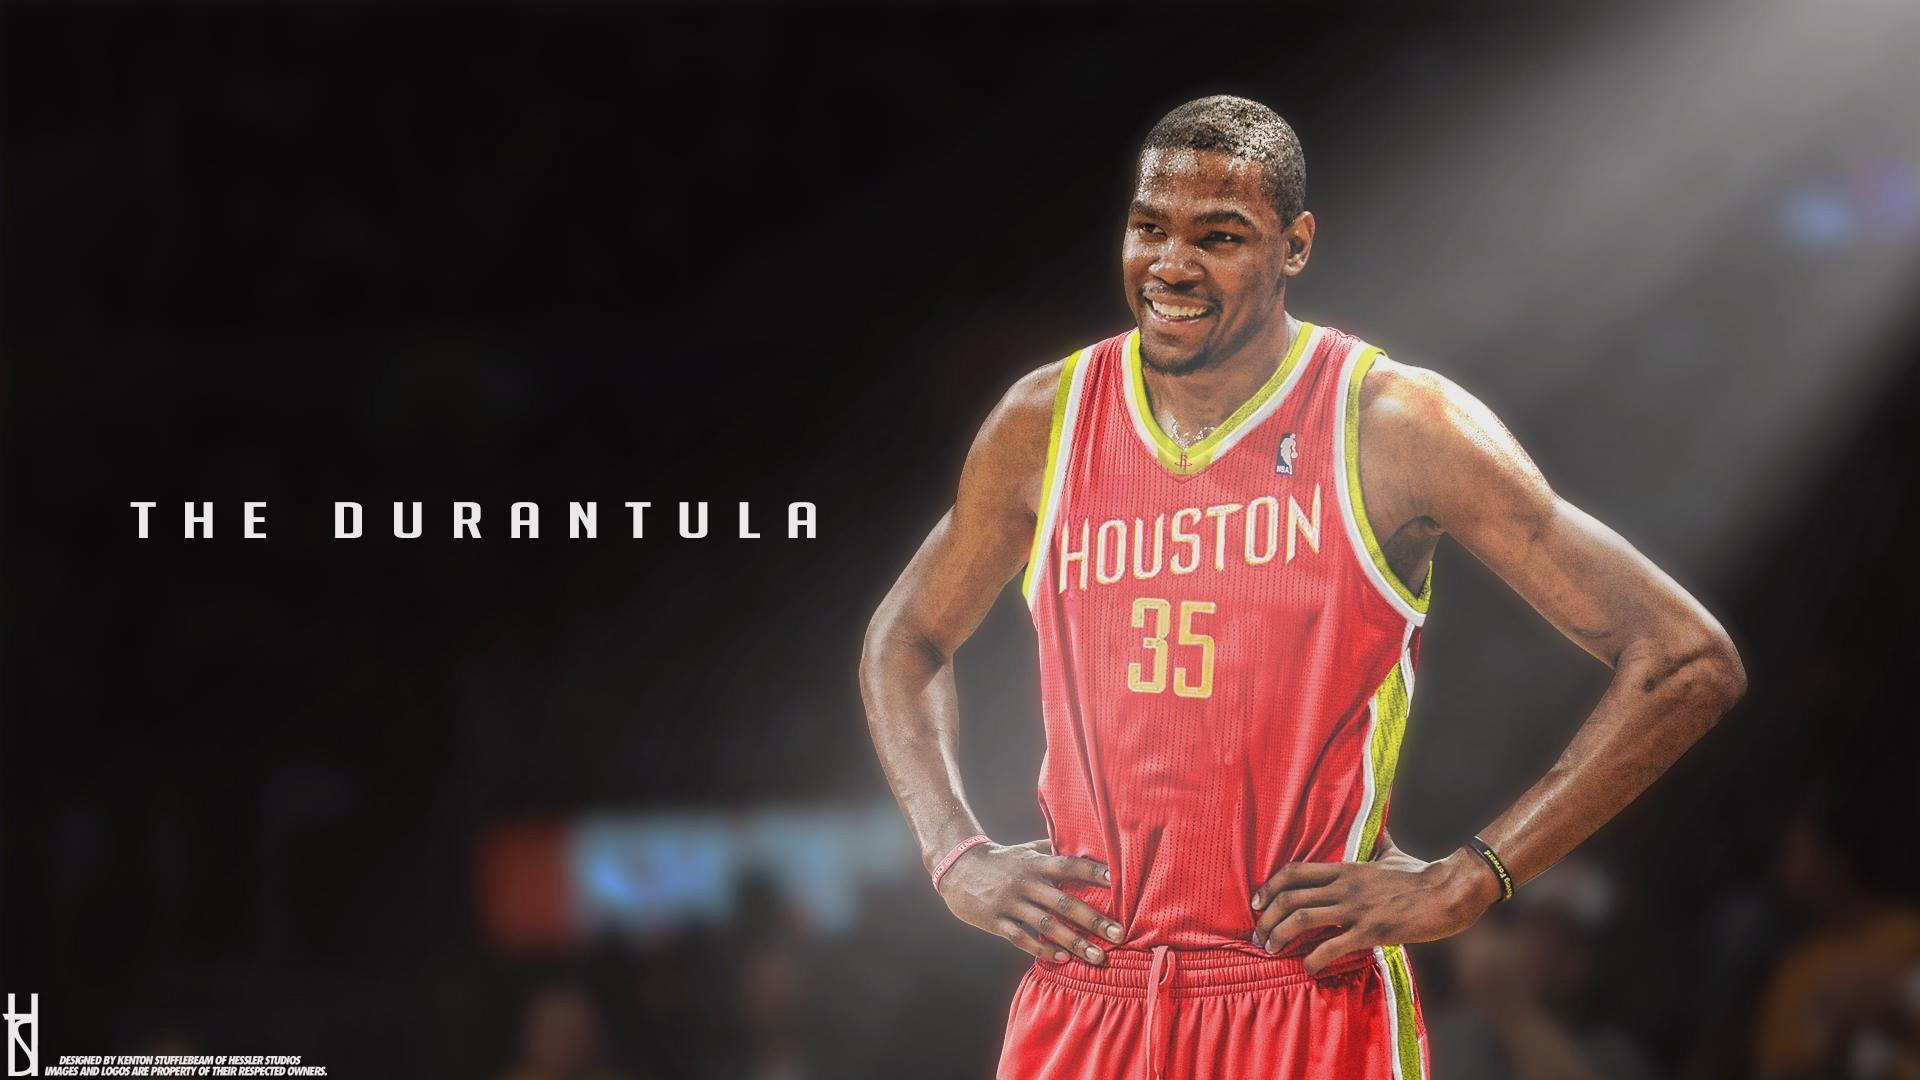 Kevin Durant Wallpapers HD Download 1920x1080